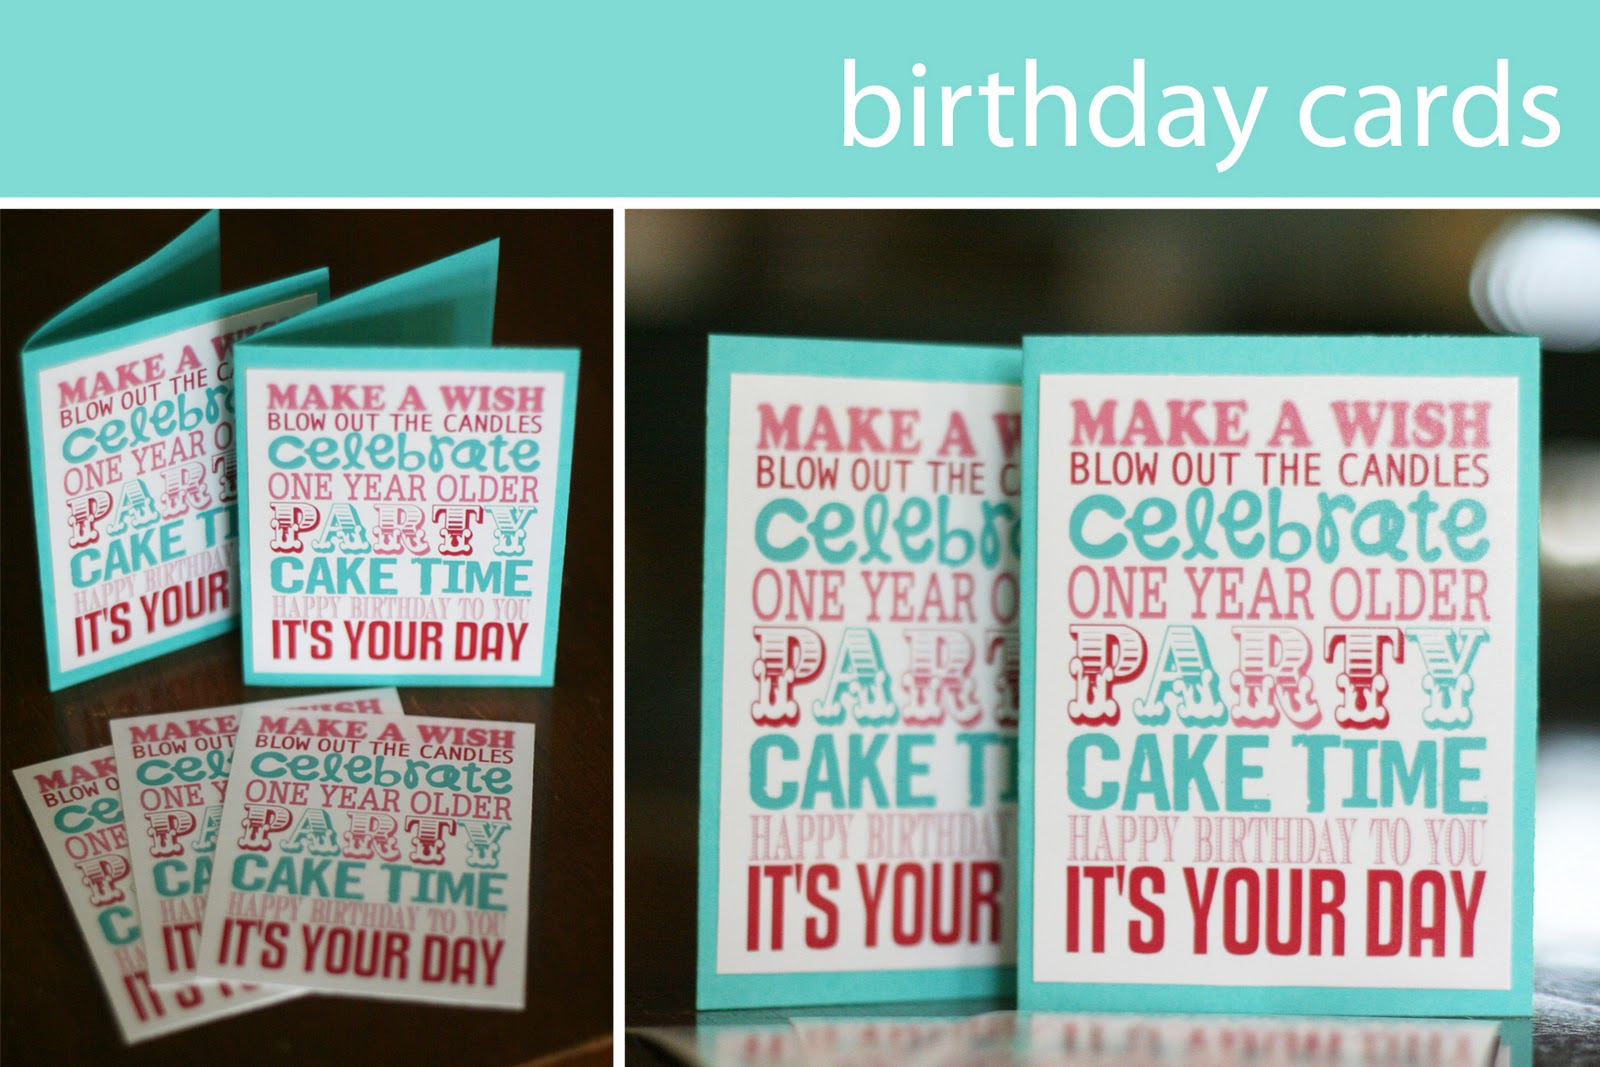 17th birthday card ideas ; birthdaycards